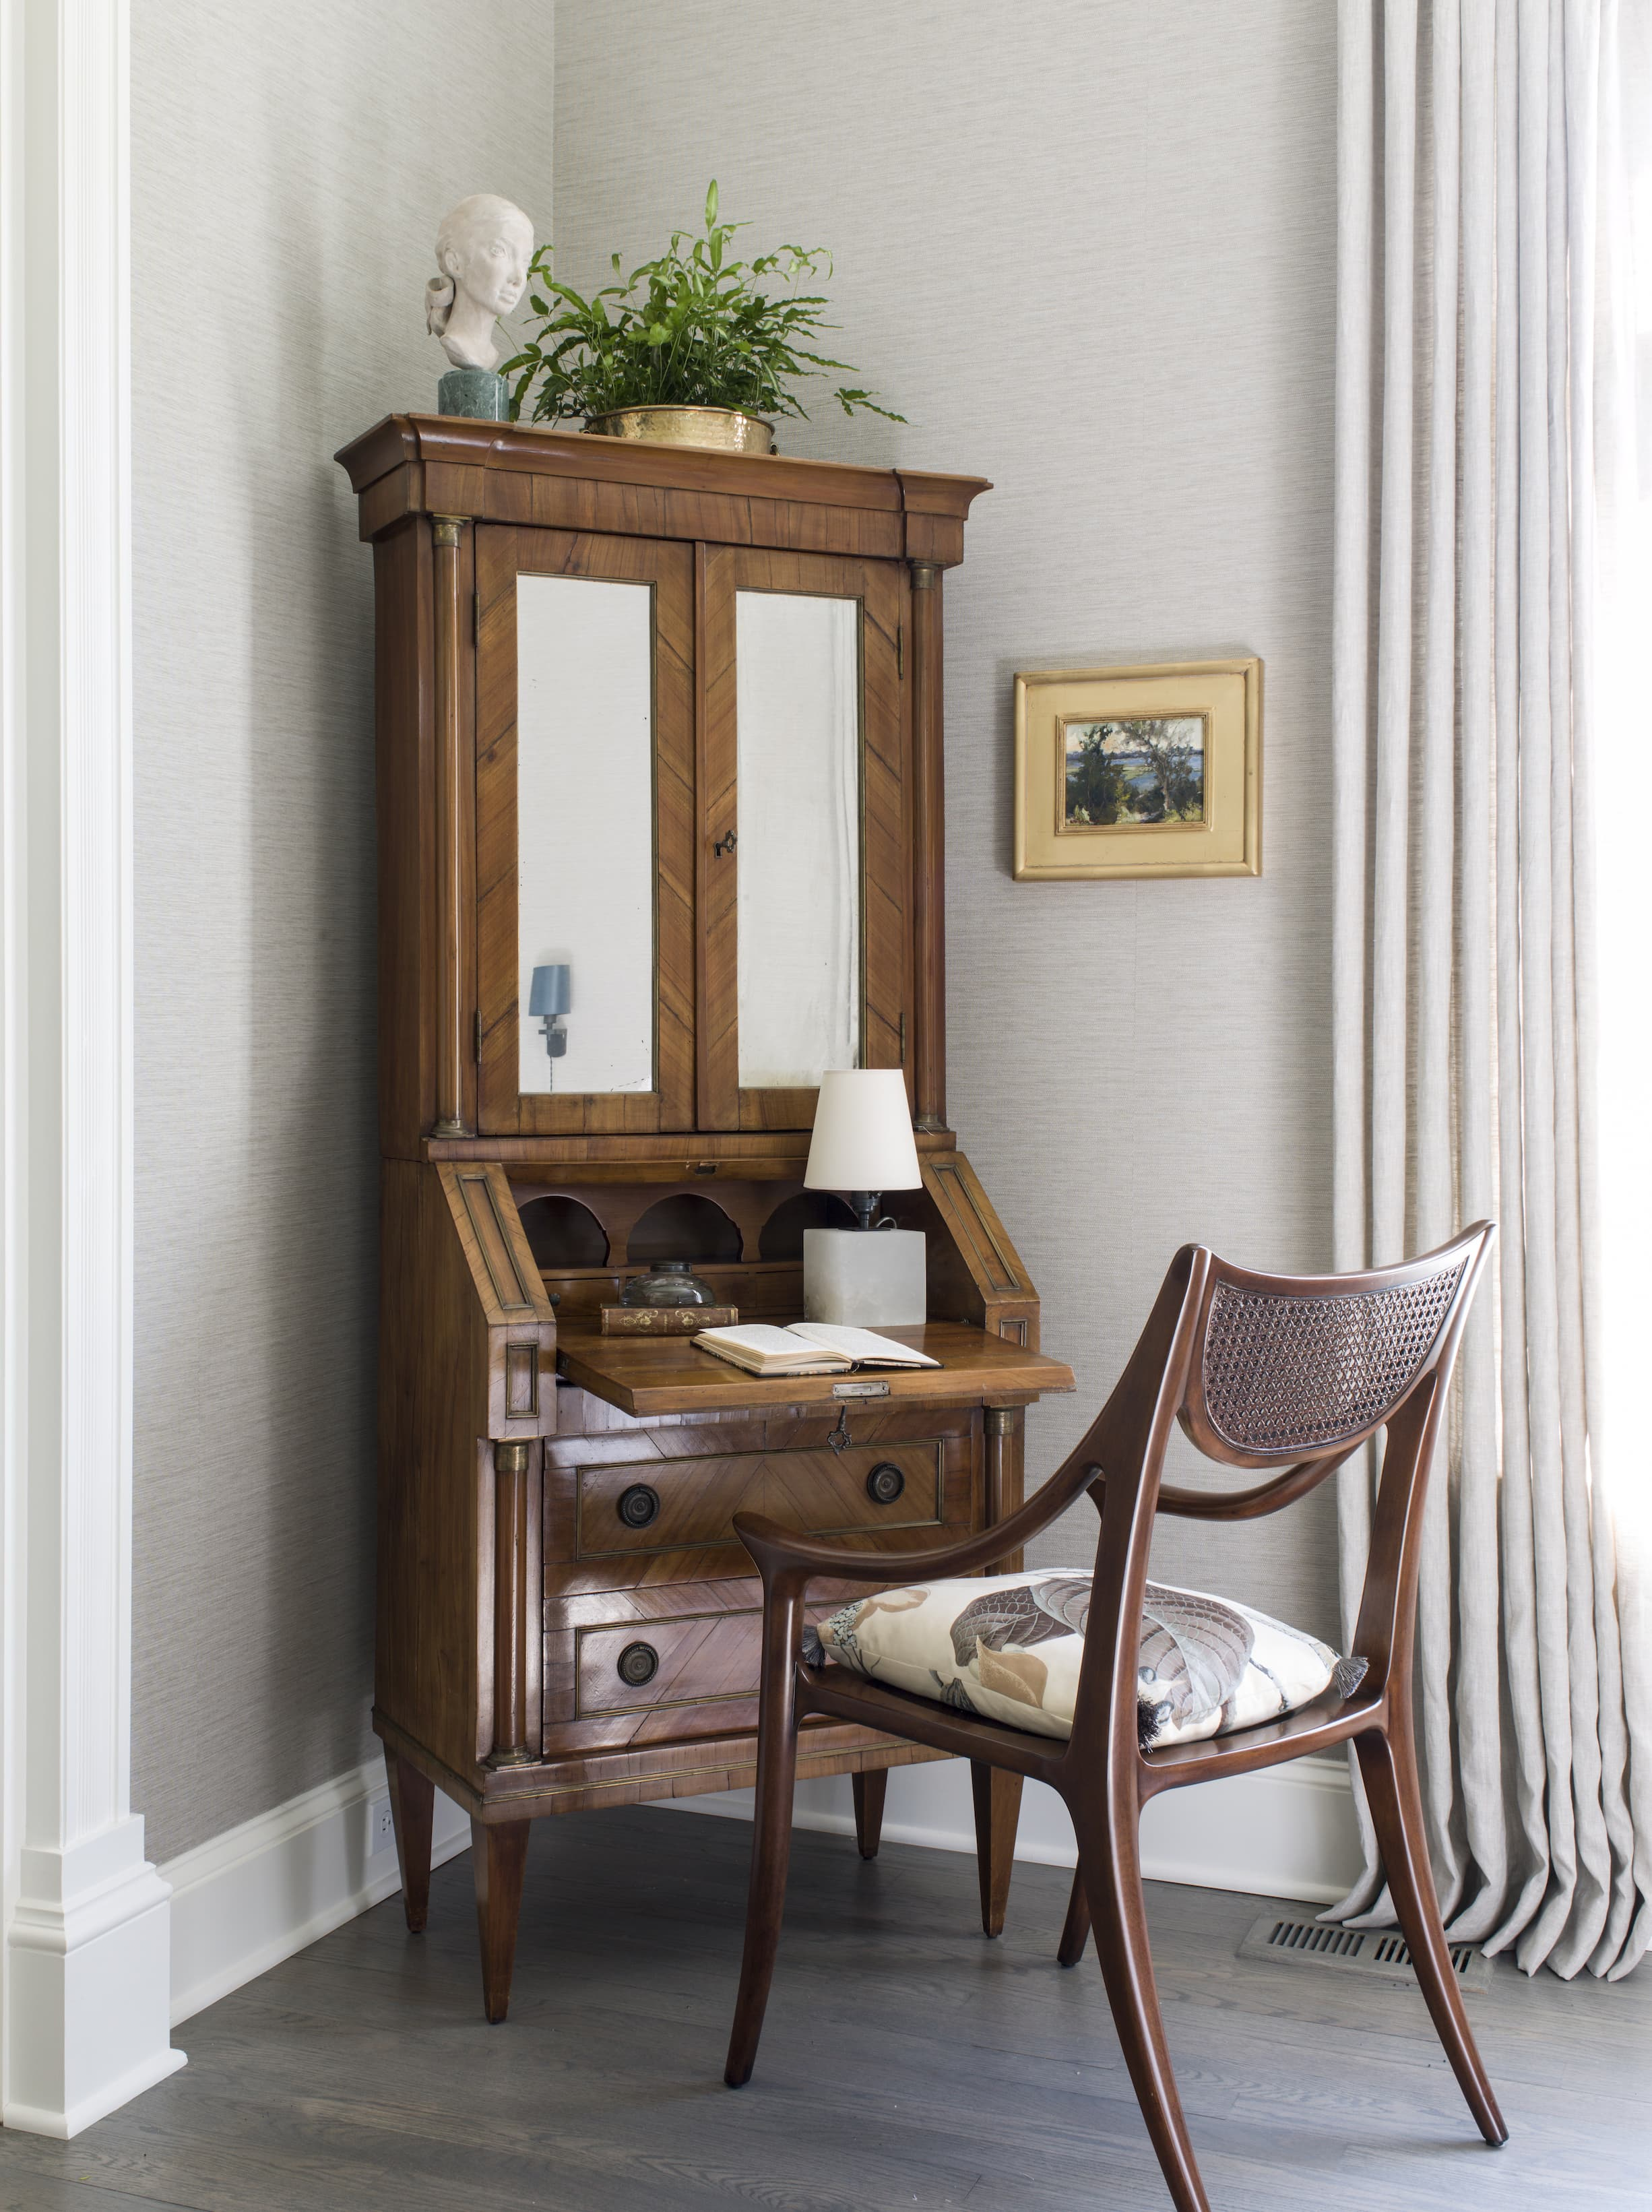 A corner cabinet with a pull-out note desk and an antique chair.